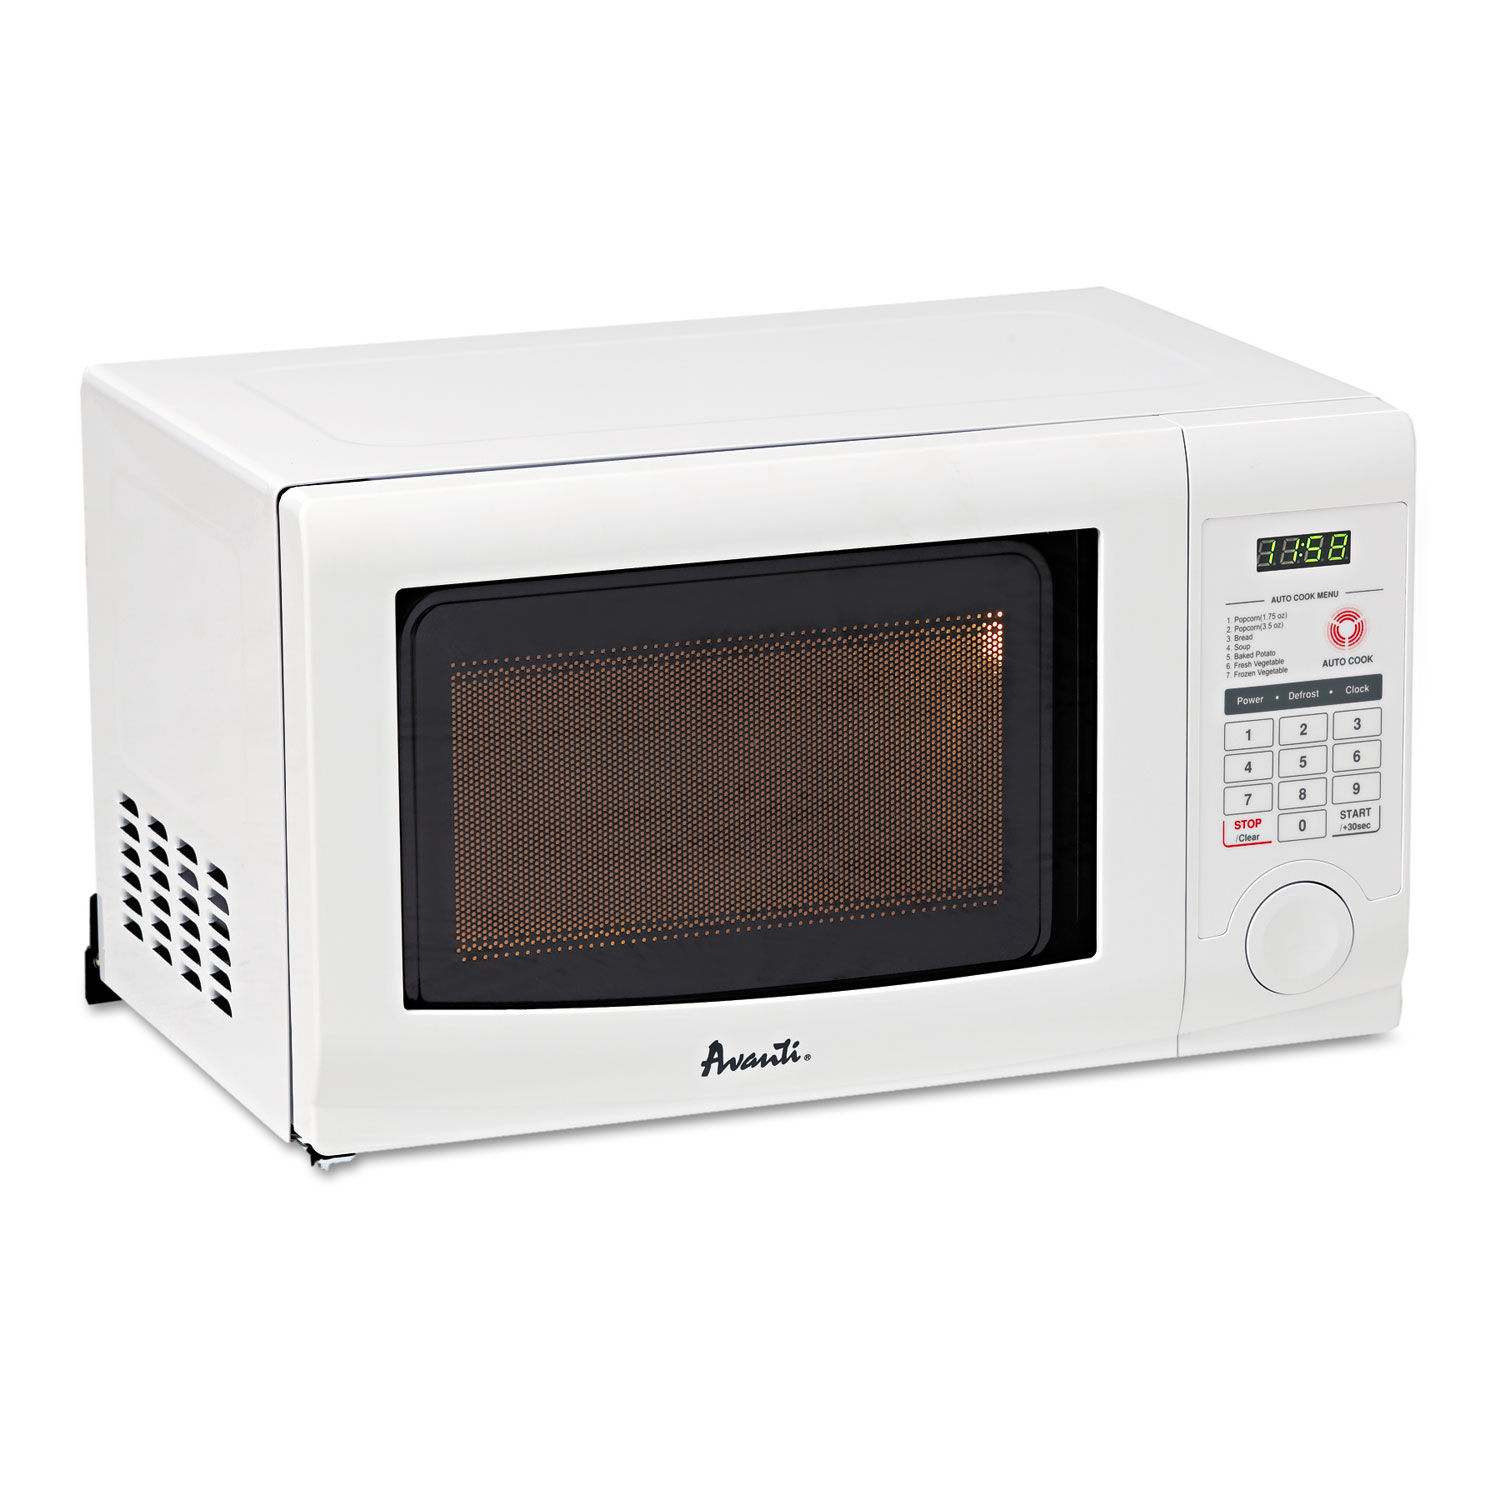 0 7 Cubic Foot Capacity Microwave Oven By Avanti